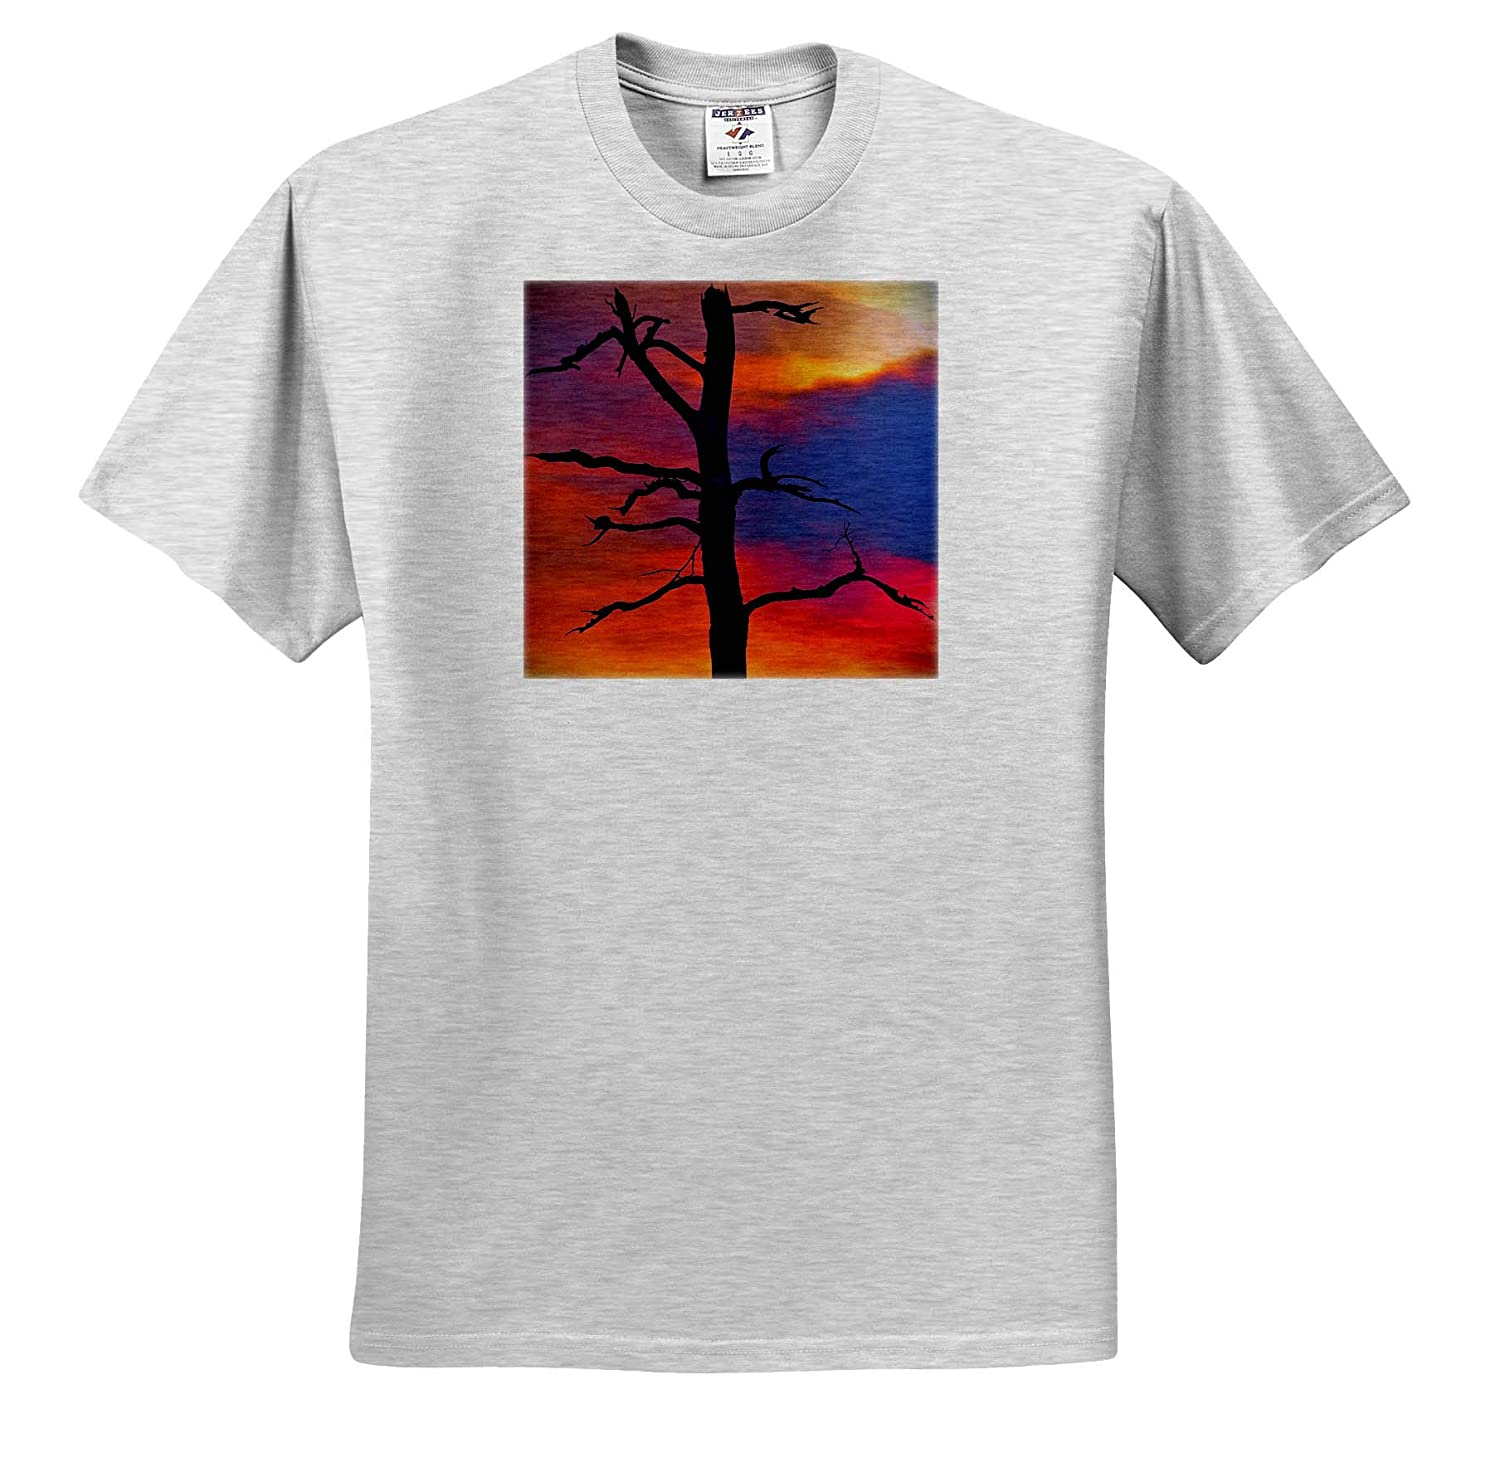 Photograph of a Dead Tree in The Pine Barrens Against a Smoky Sunset 3dRose Stamp City Nature - T-Shirts